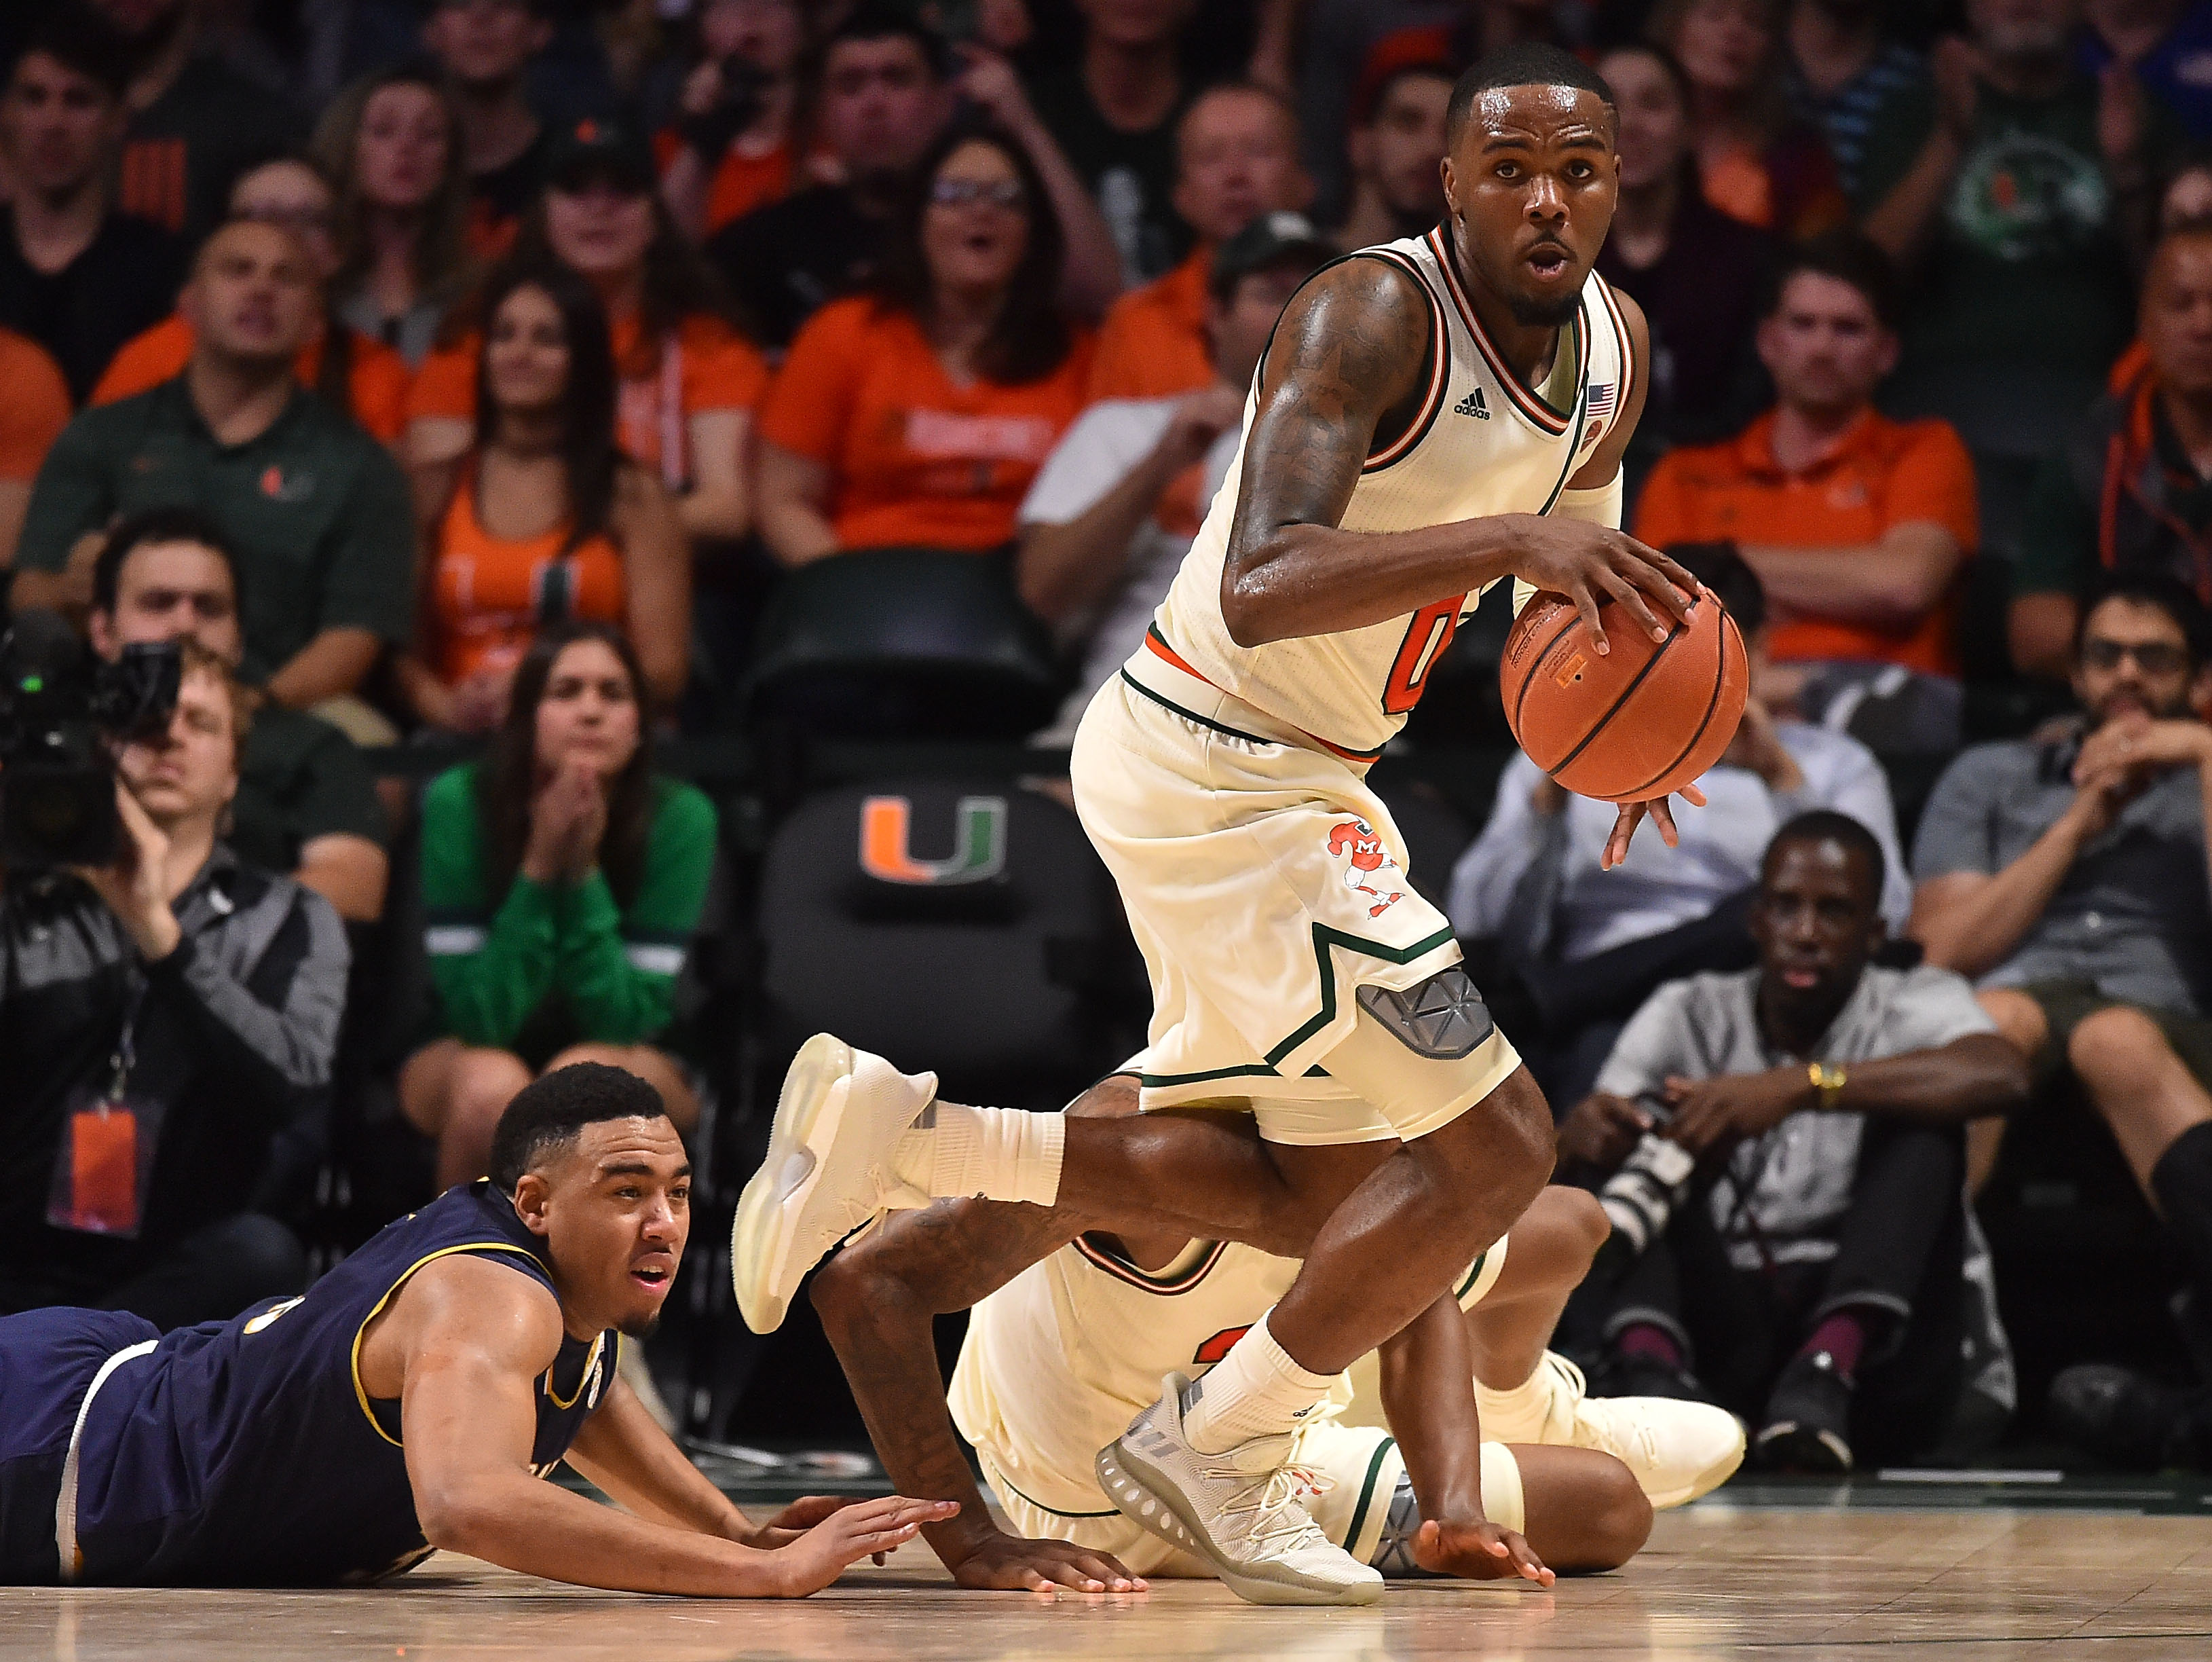 NCAA Basketball: Notre Dame at Miami